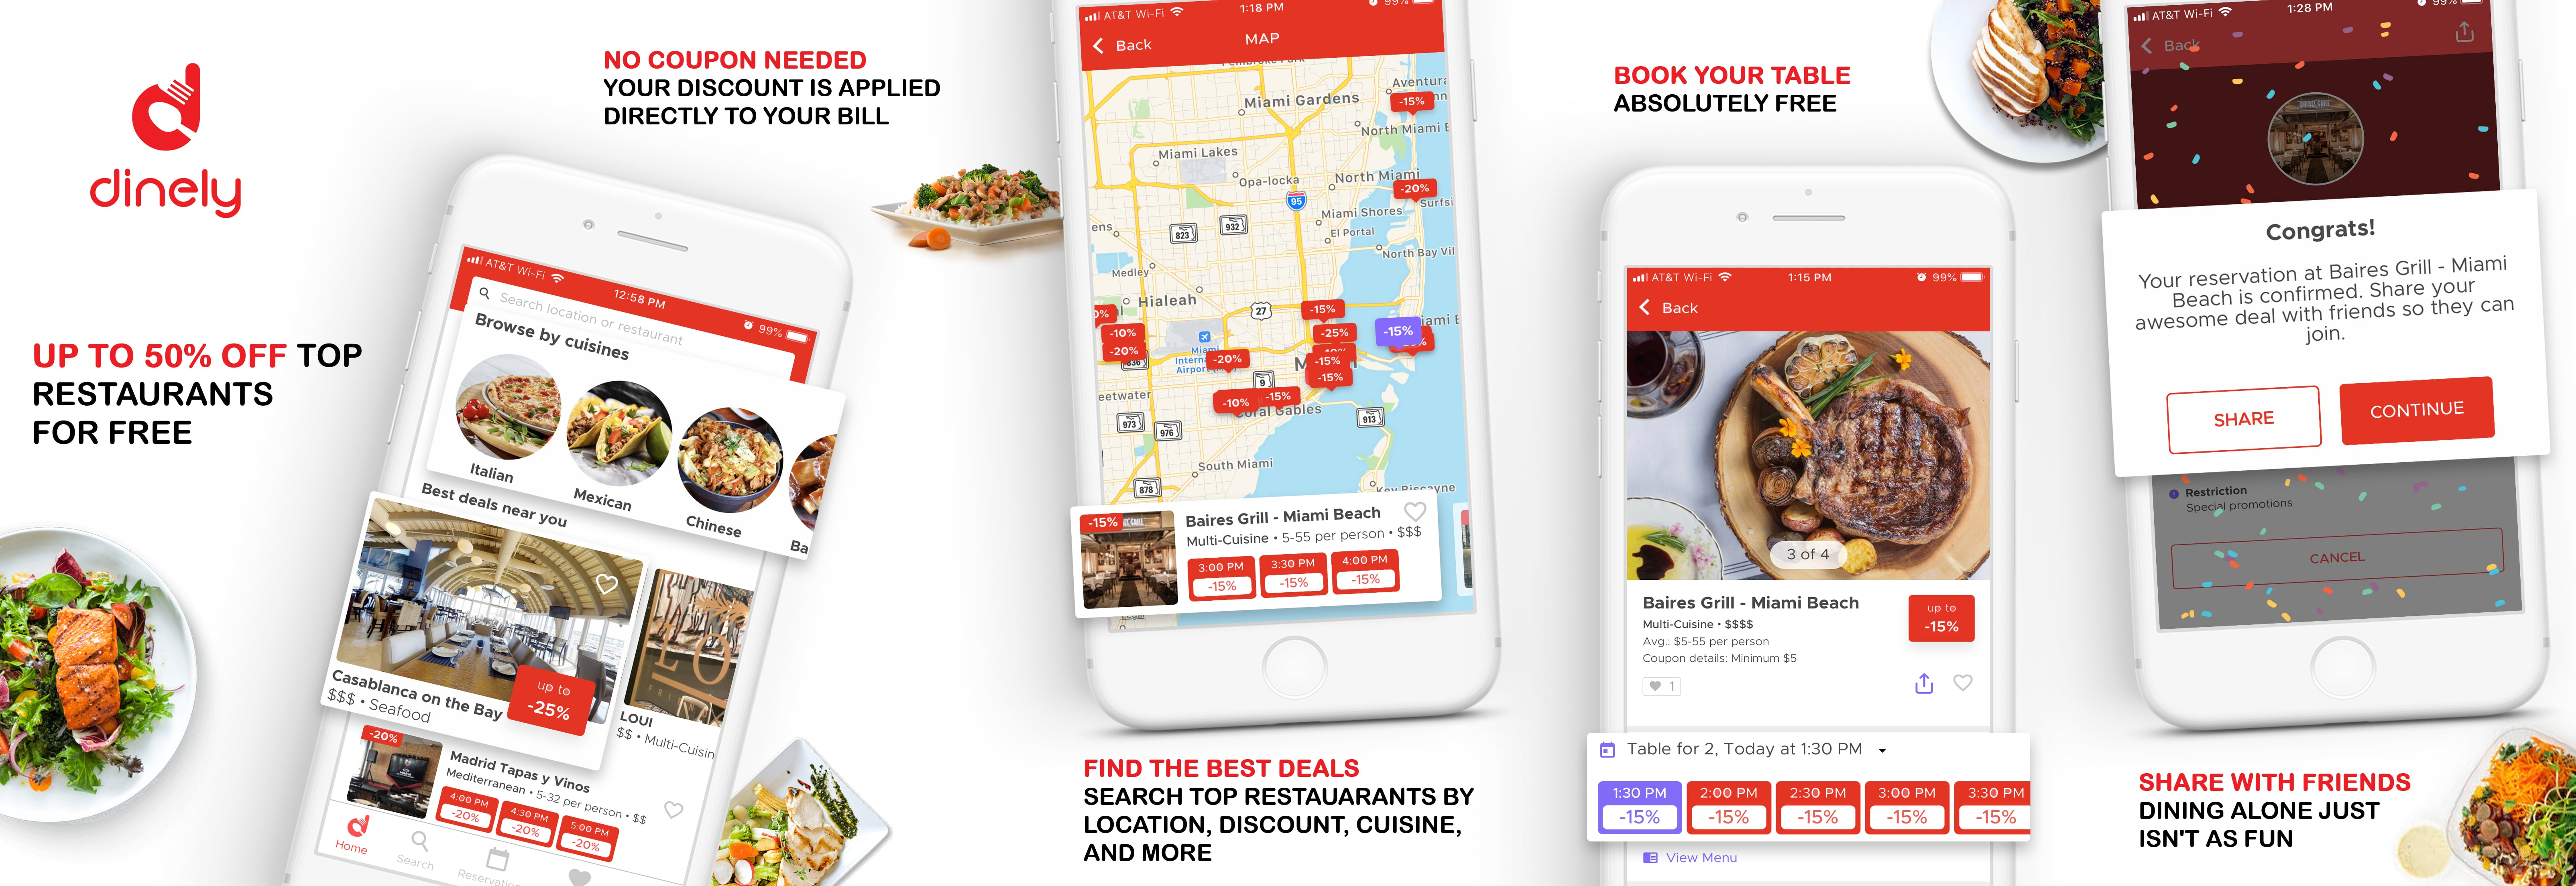 Free App, dinely, Gets You Massive Discounts at Restaurants